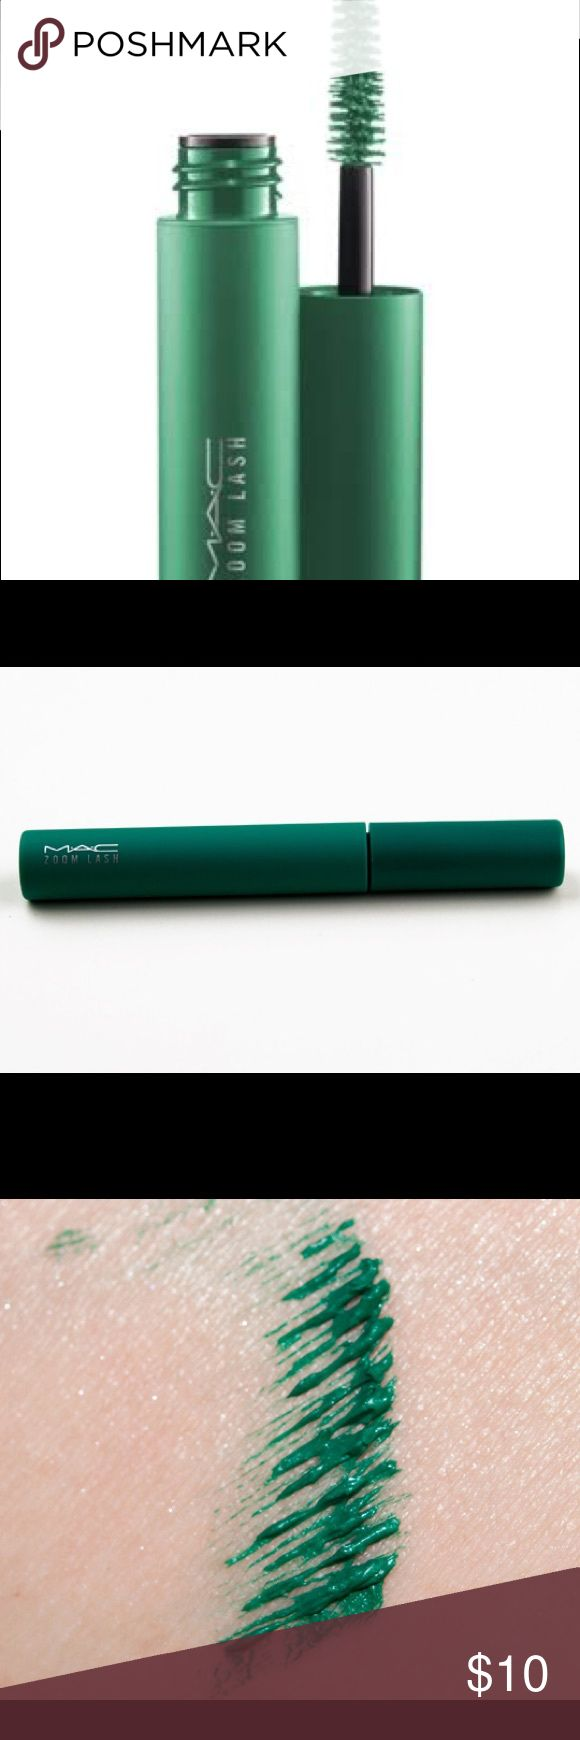 MAC Zoom Lash -Green is Green- 🎀BNIB🎀  🎀Authentic🎀  🎀Limited Edition-from the MAC Flighty Collection🎀  This beautiful jade green mascara volumizes, lengthens, and curls your lashes to perfection! MAC Cosmetics Makeup Mascara